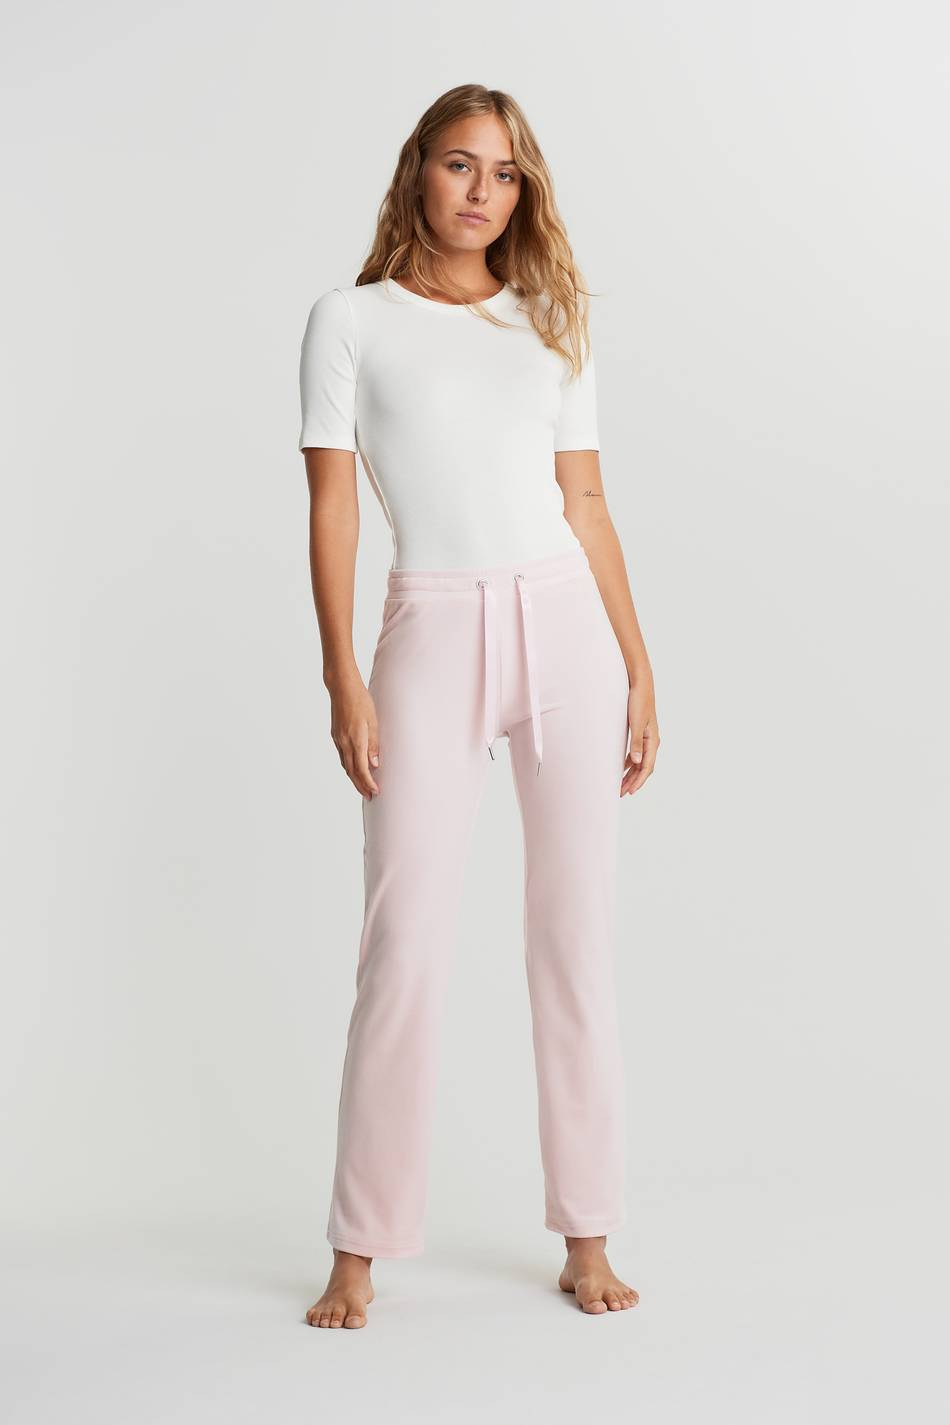 Gina Tricot Cecilia velour trousers XL Female Light pink